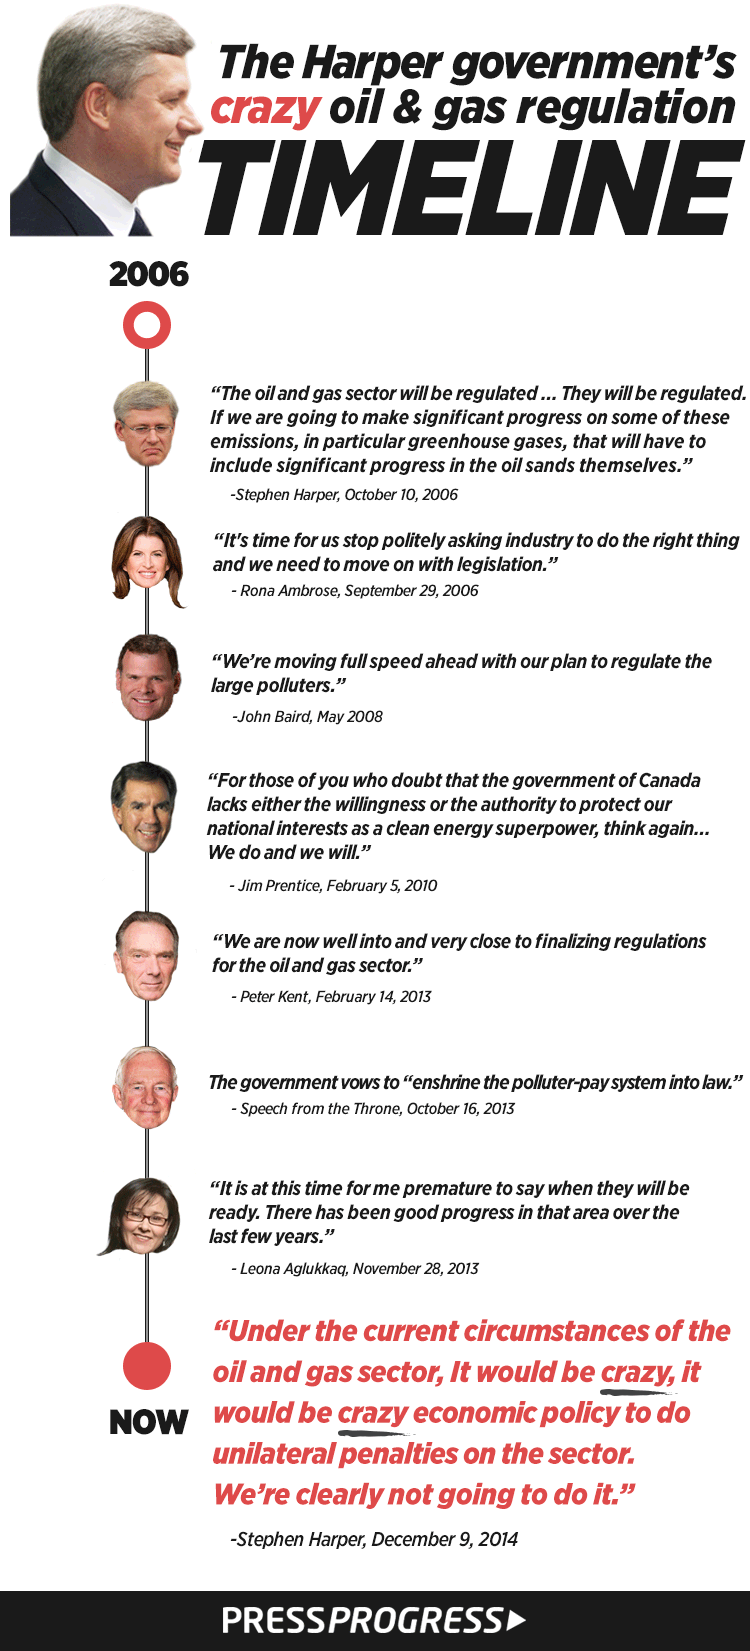 harpers-crazy-oil-gas-timeline.png